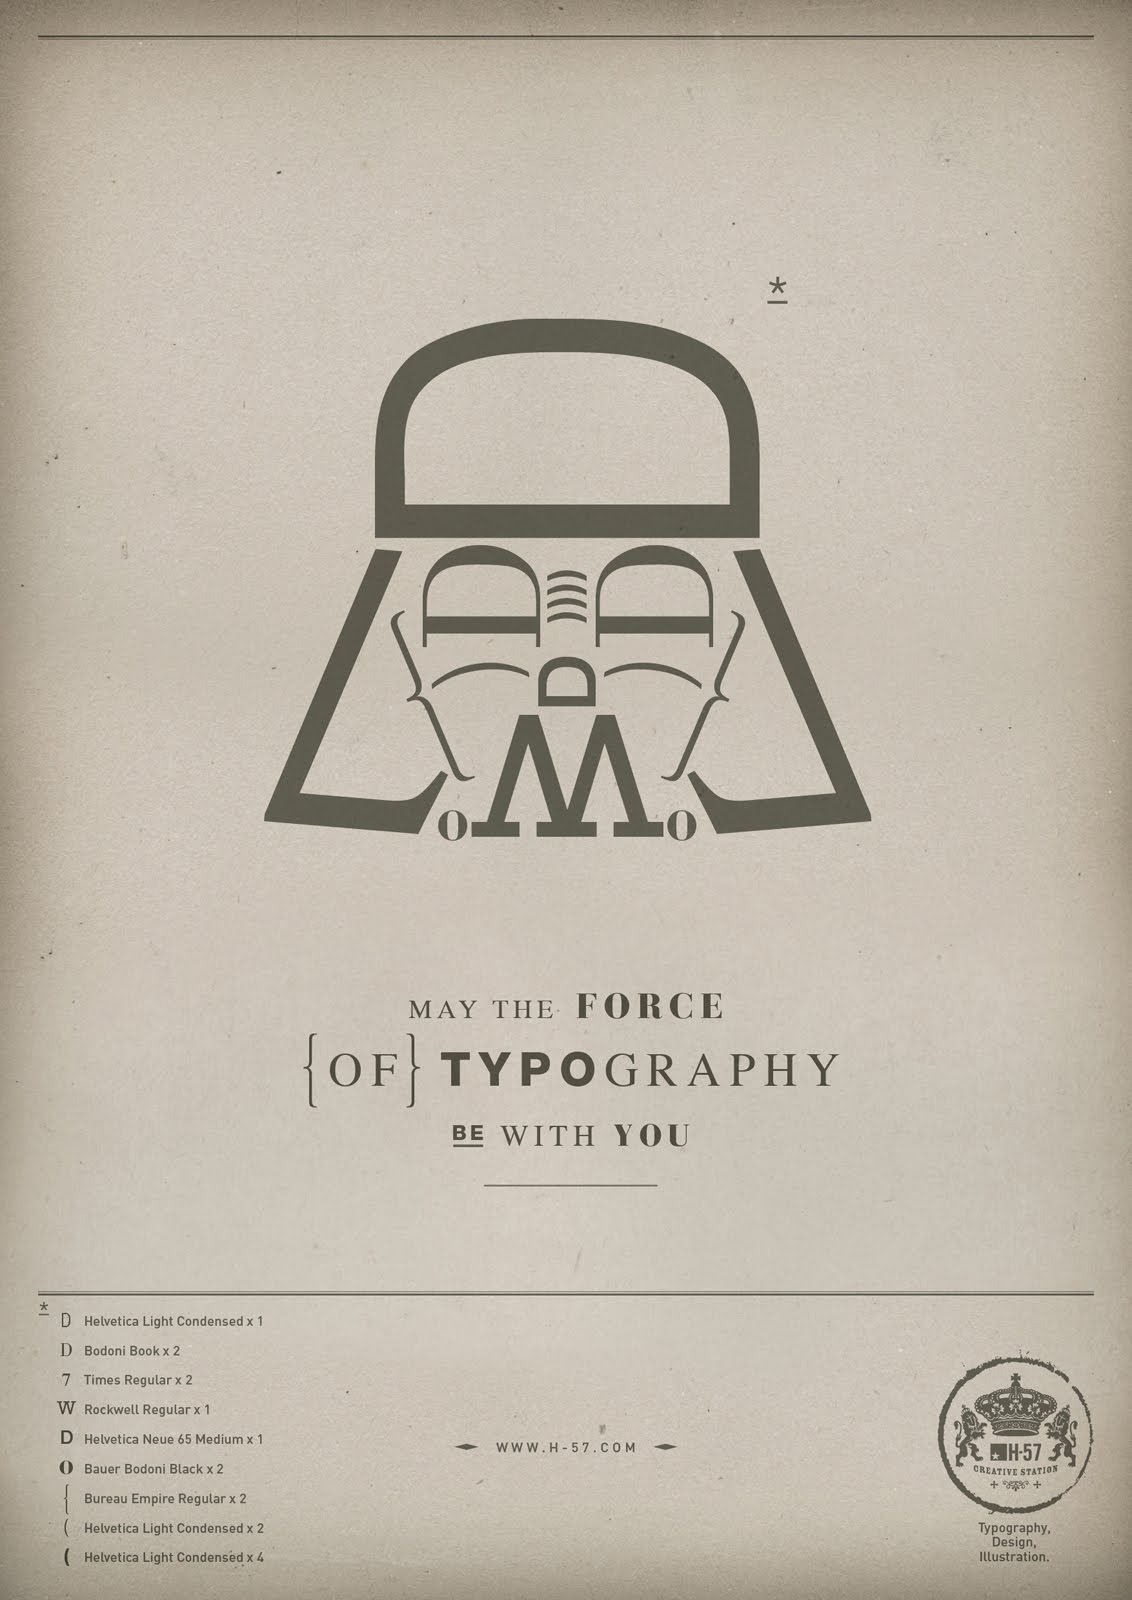 http://1.bp.blogspot.com/_42nL05s3A-8/TOO7RjsZU8I/AAAAAAAADDg/XZLmz2-DPko/s1600/The-force-of-Typography382.jpg